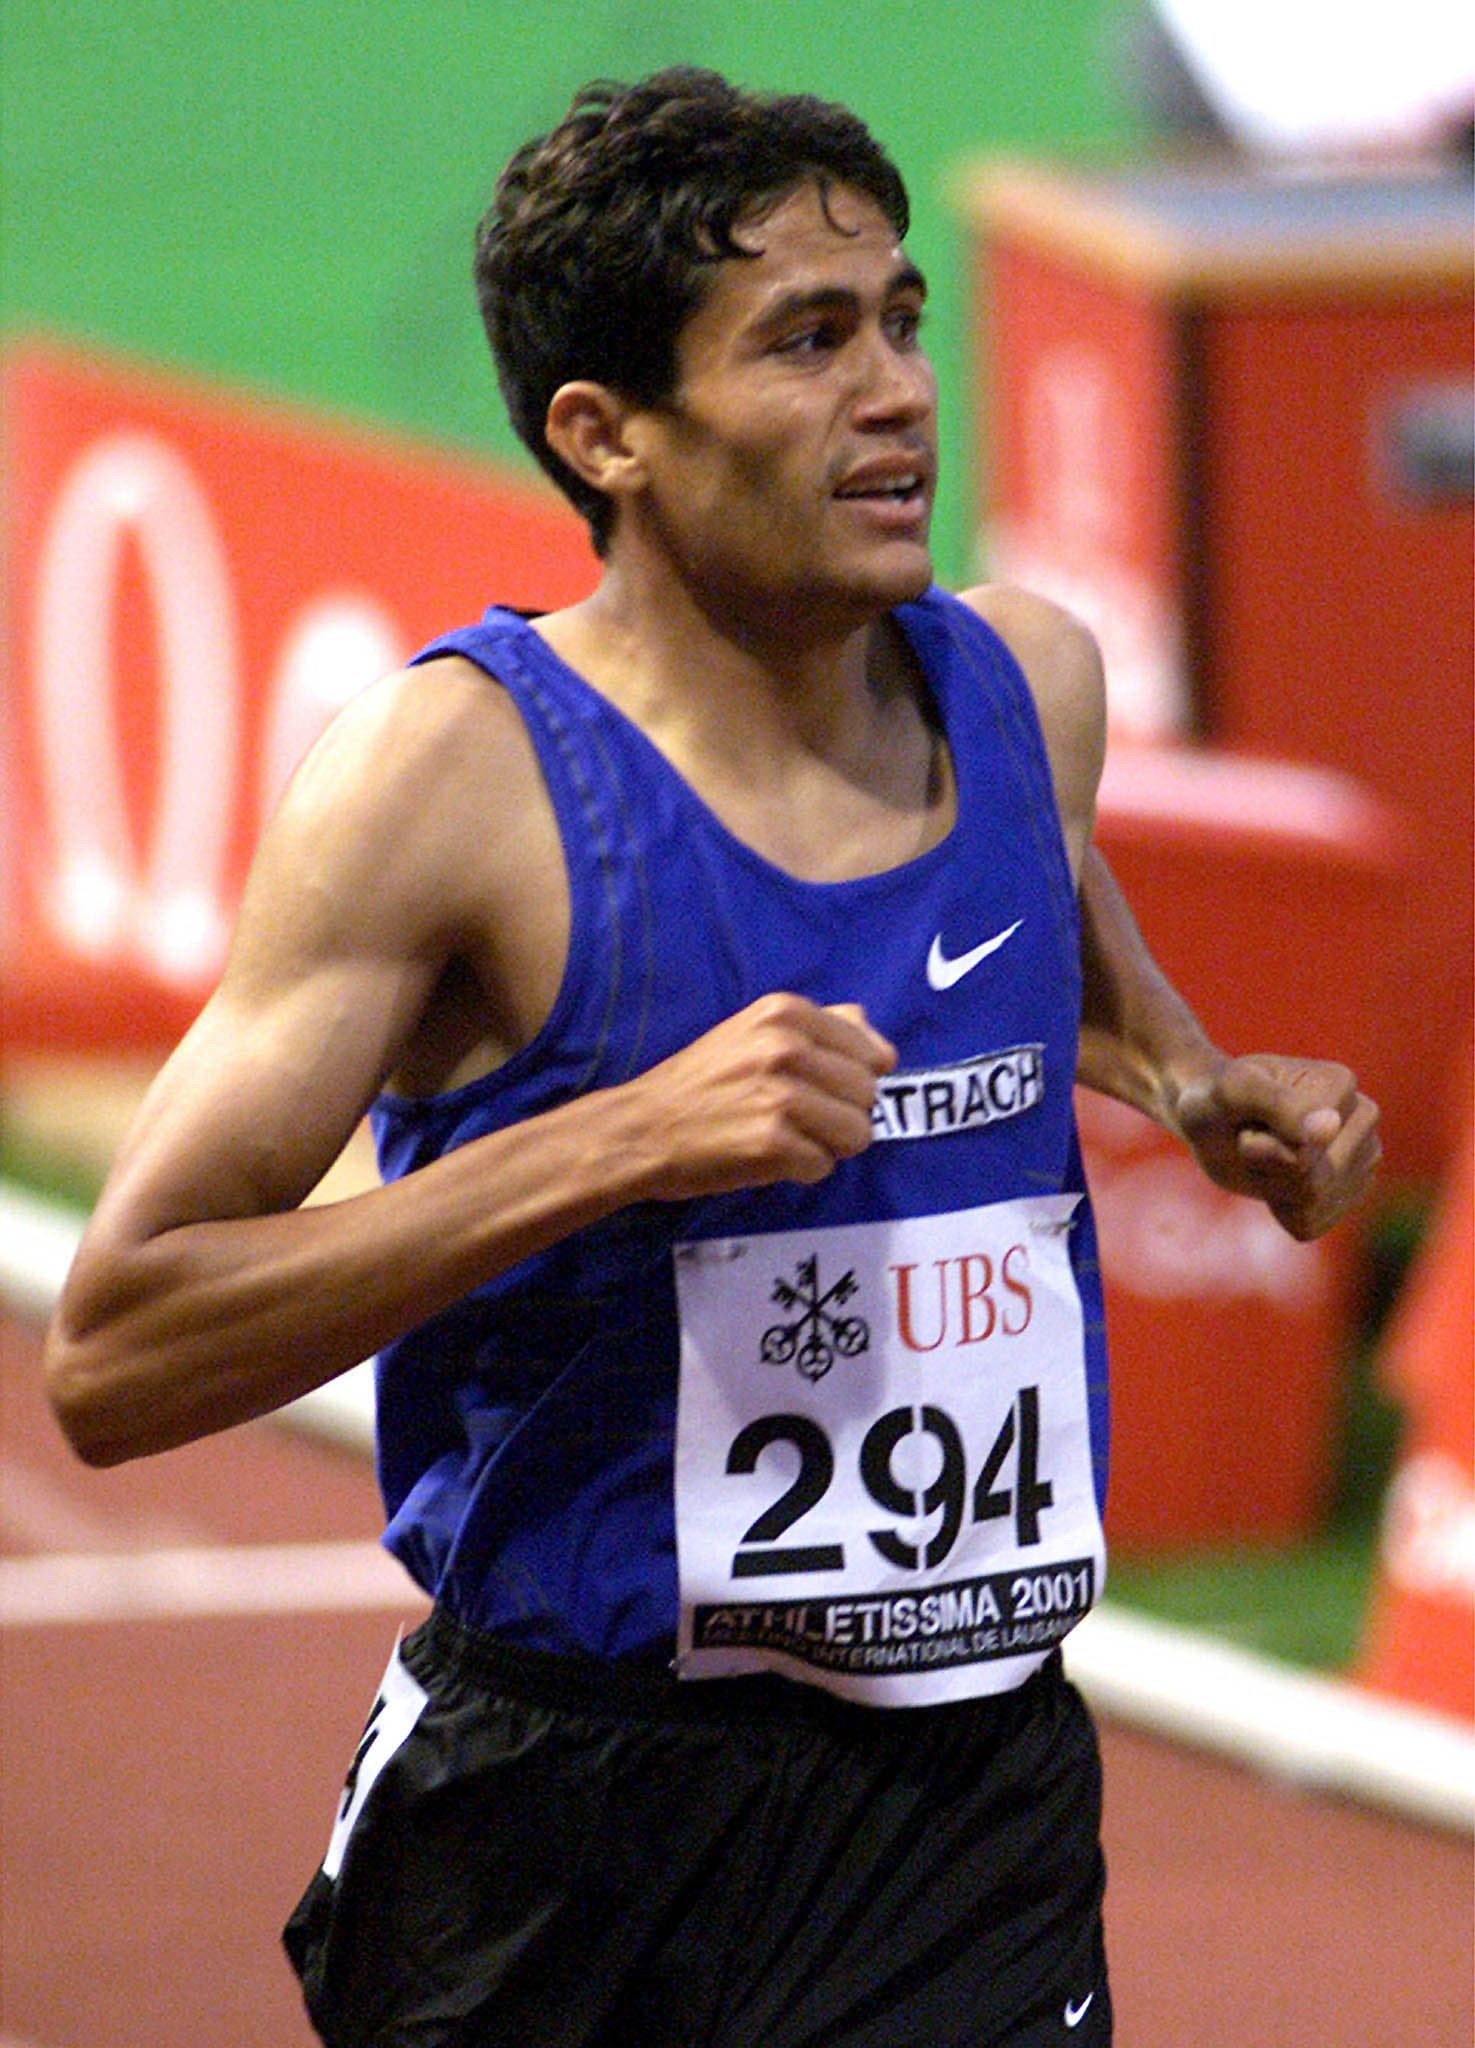 Ali Saidi-Sief of Algeria crosse the finish line to win the 1500m race at the Lausanne Grand Prix athletics meeting in Lausanne July 4, 2001. Sief won the race in a time of three minutes 29.51 seconds. (Reuters)